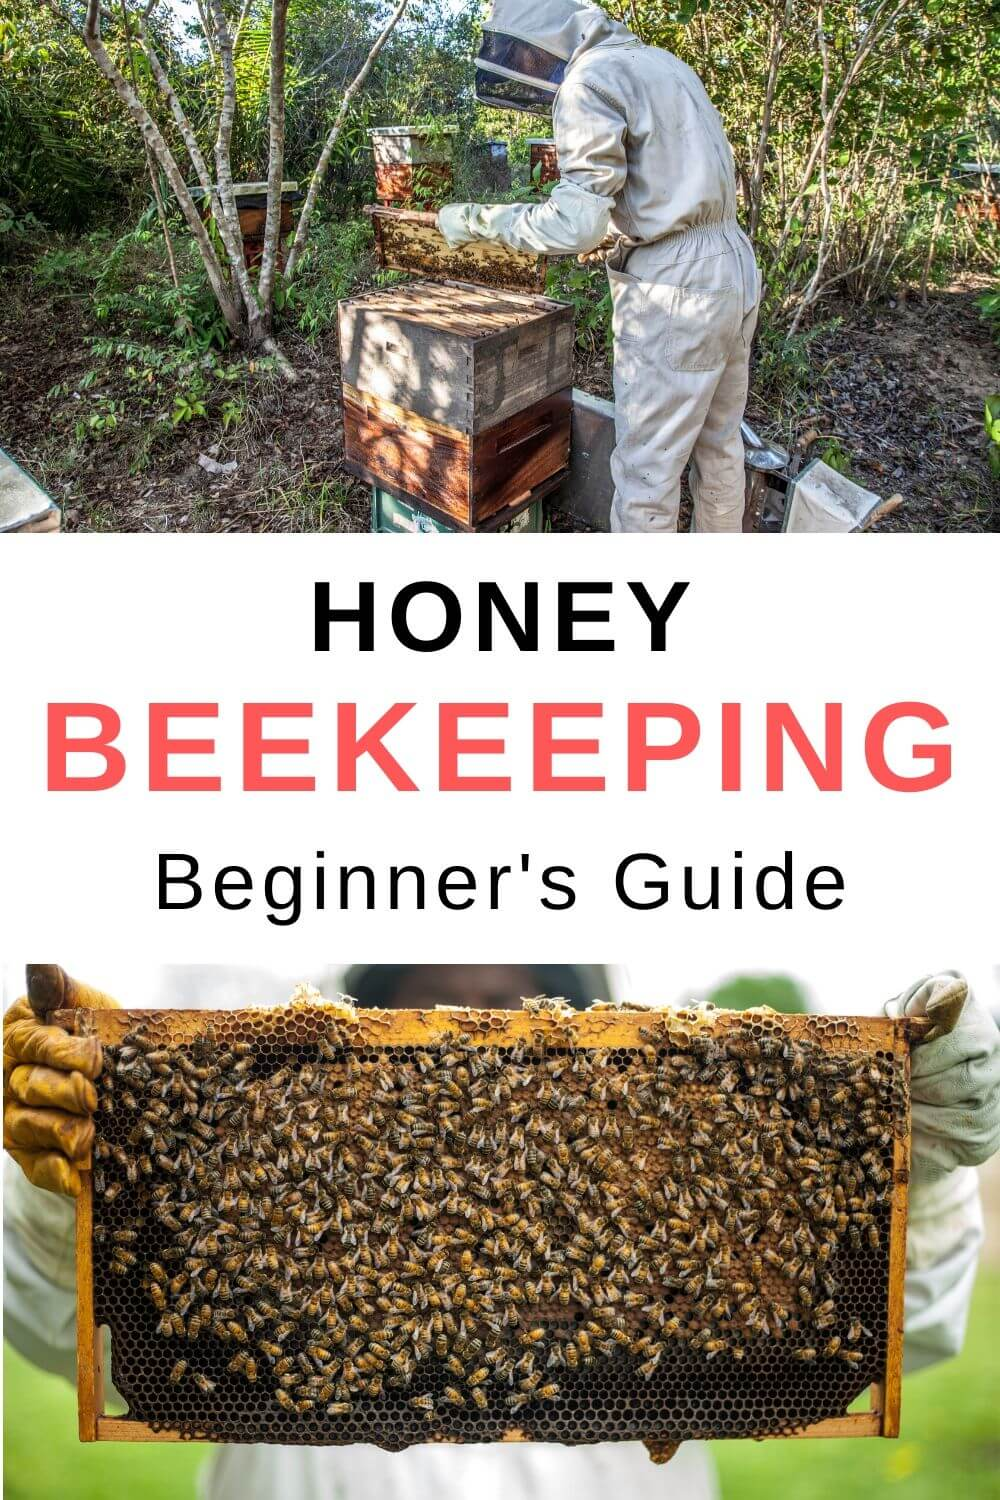 honey beekeeping beginner's guide